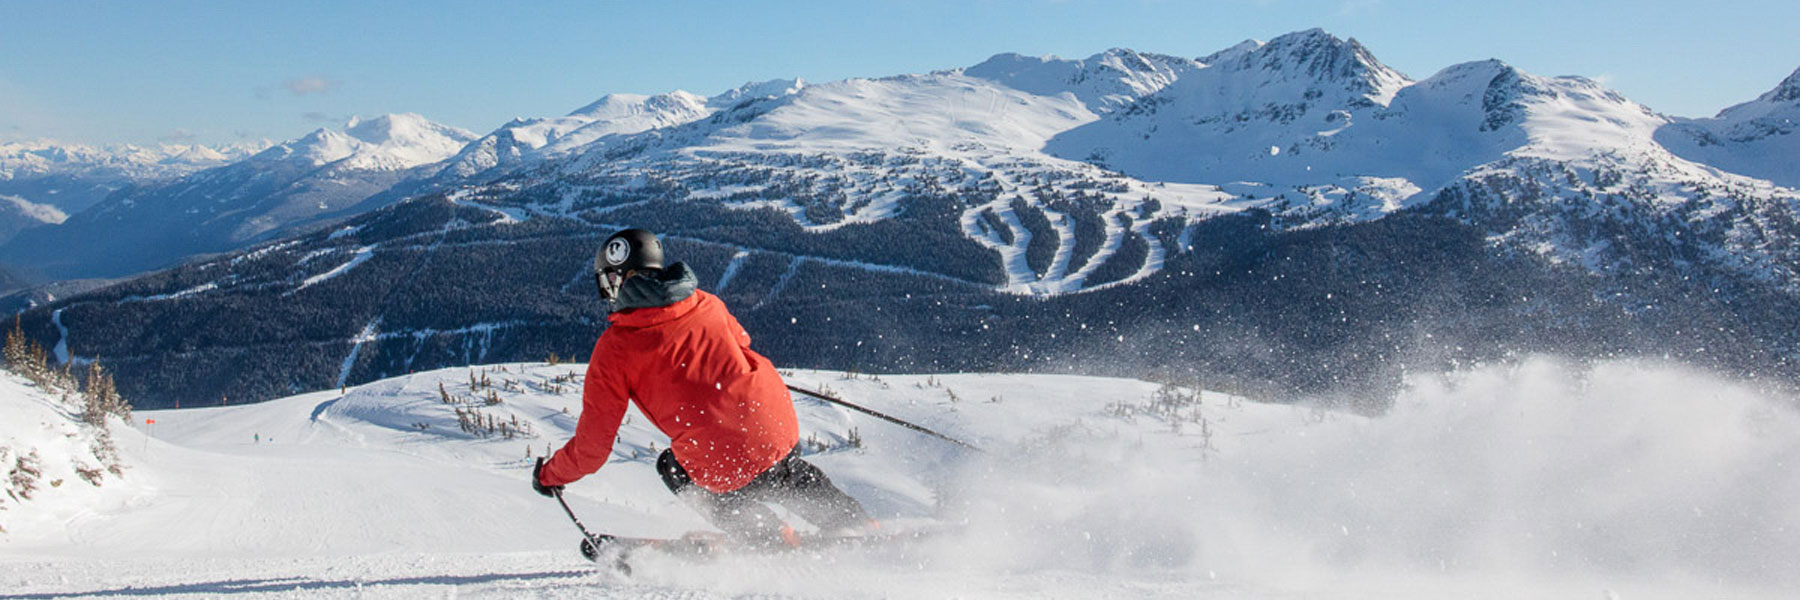 Whistler / Blackcomb, British Columbia, Canada Ski Vacation: Save 37 - 47% at ResortQuest Whistler properties! Book by November 15th!